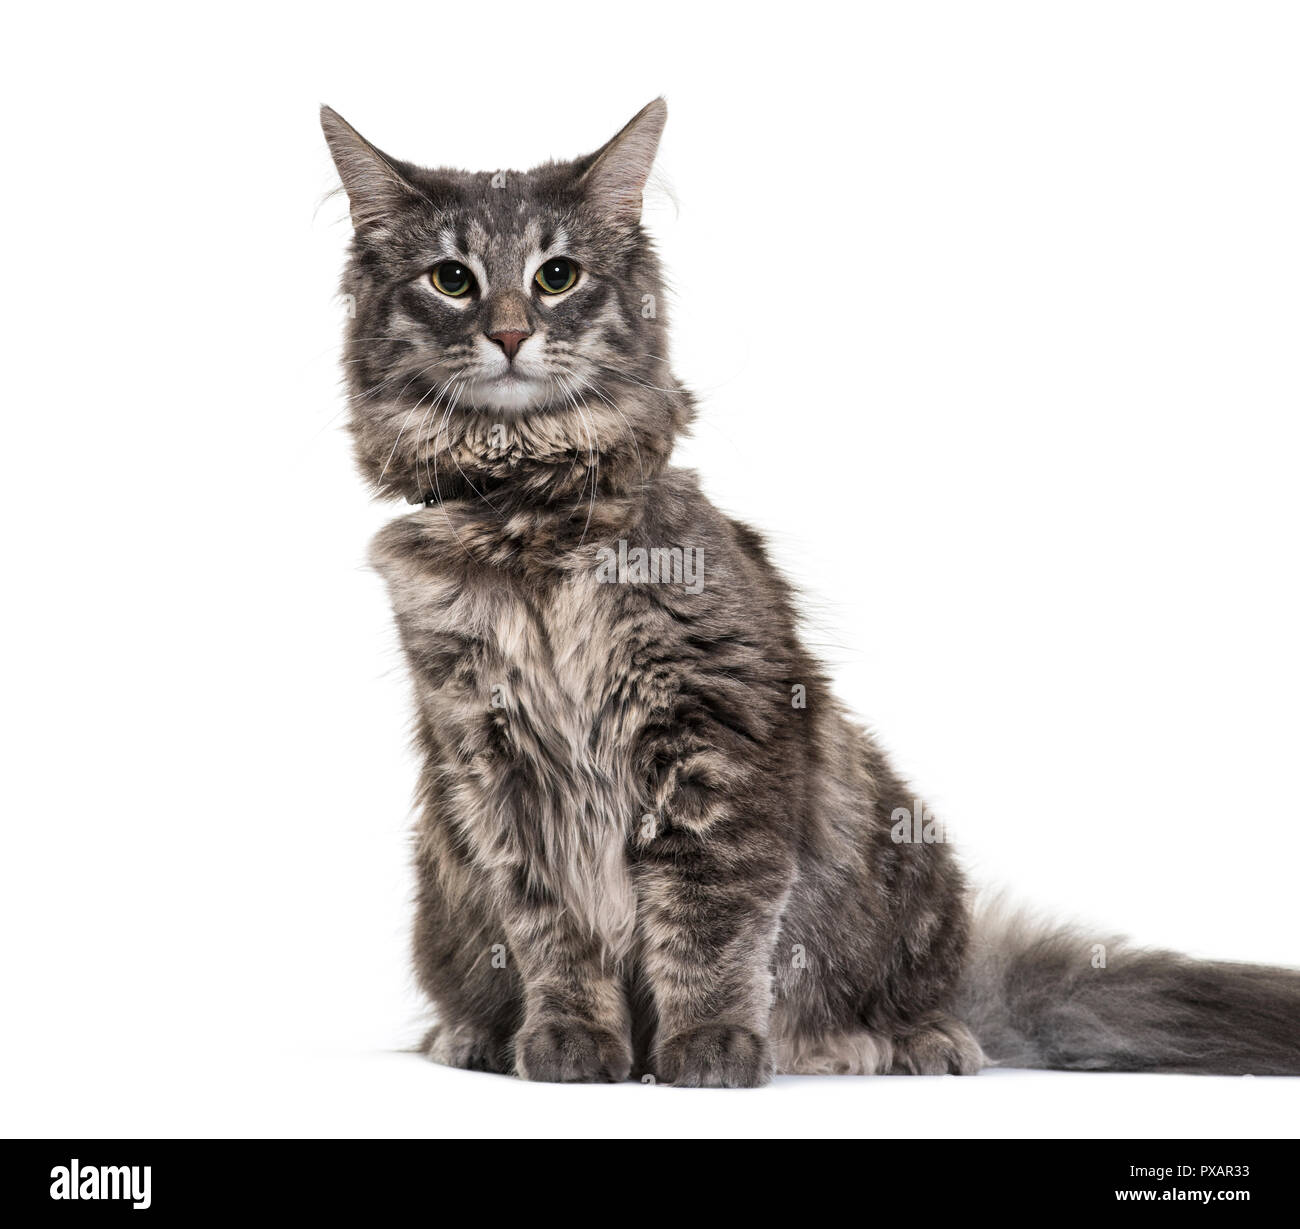 Norwegian Forest Cat, 9 months old, in front of white background - Stock Image